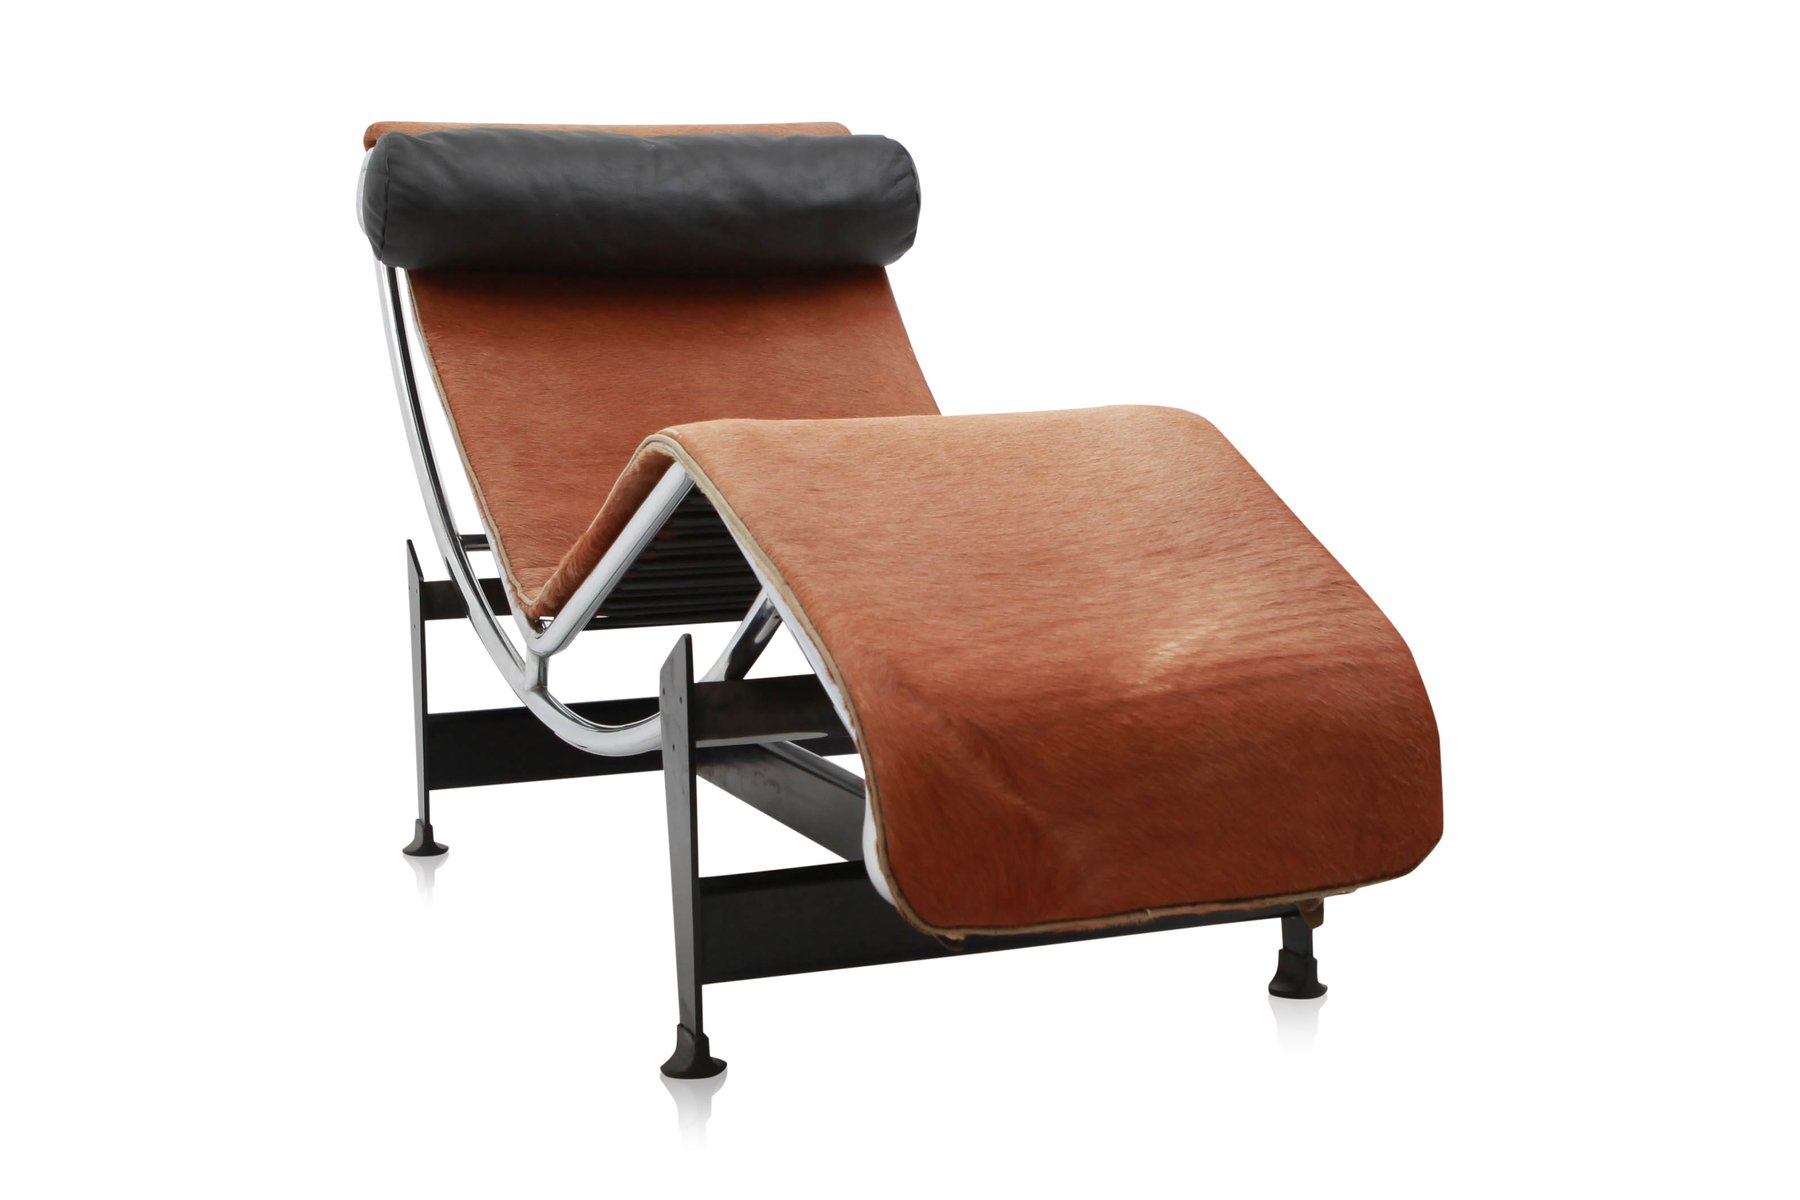 Lc4 Pony Lounge Chair By Le Corbusier For Cassina 1960s